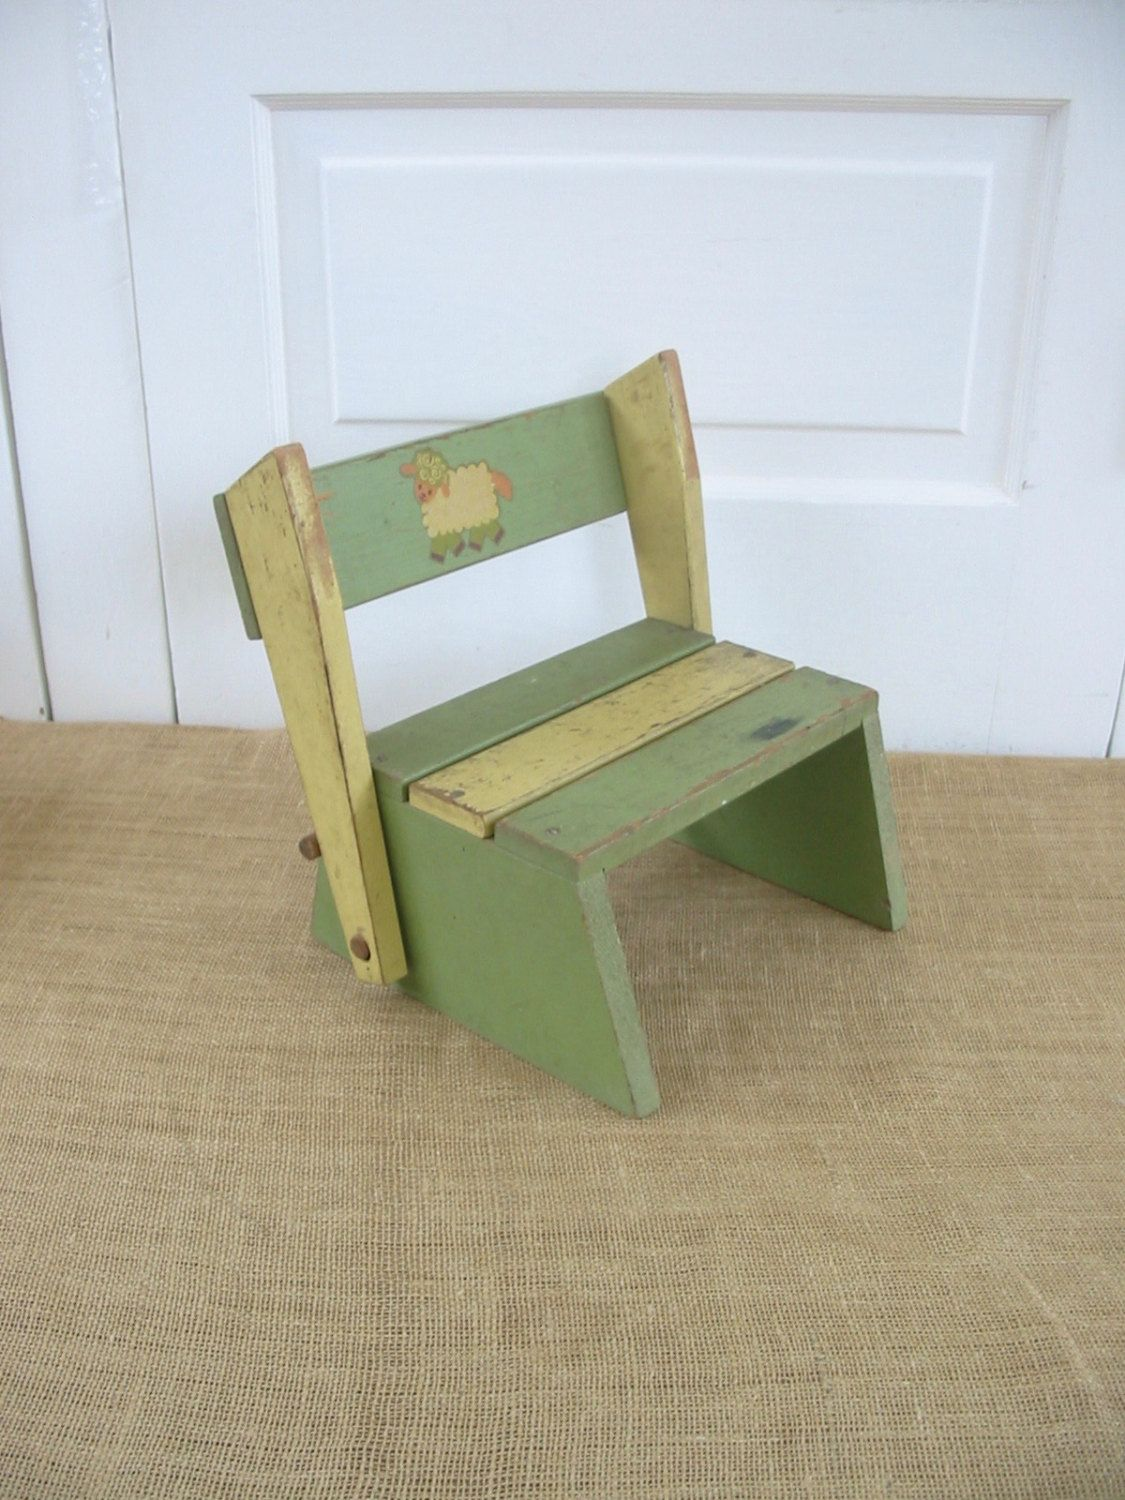 Astounding Vintage Child Chair Child Stool Green Yellow Nursery Decor Onthecornerstone Fun Painted Chair Ideas Images Onthecornerstoneorg